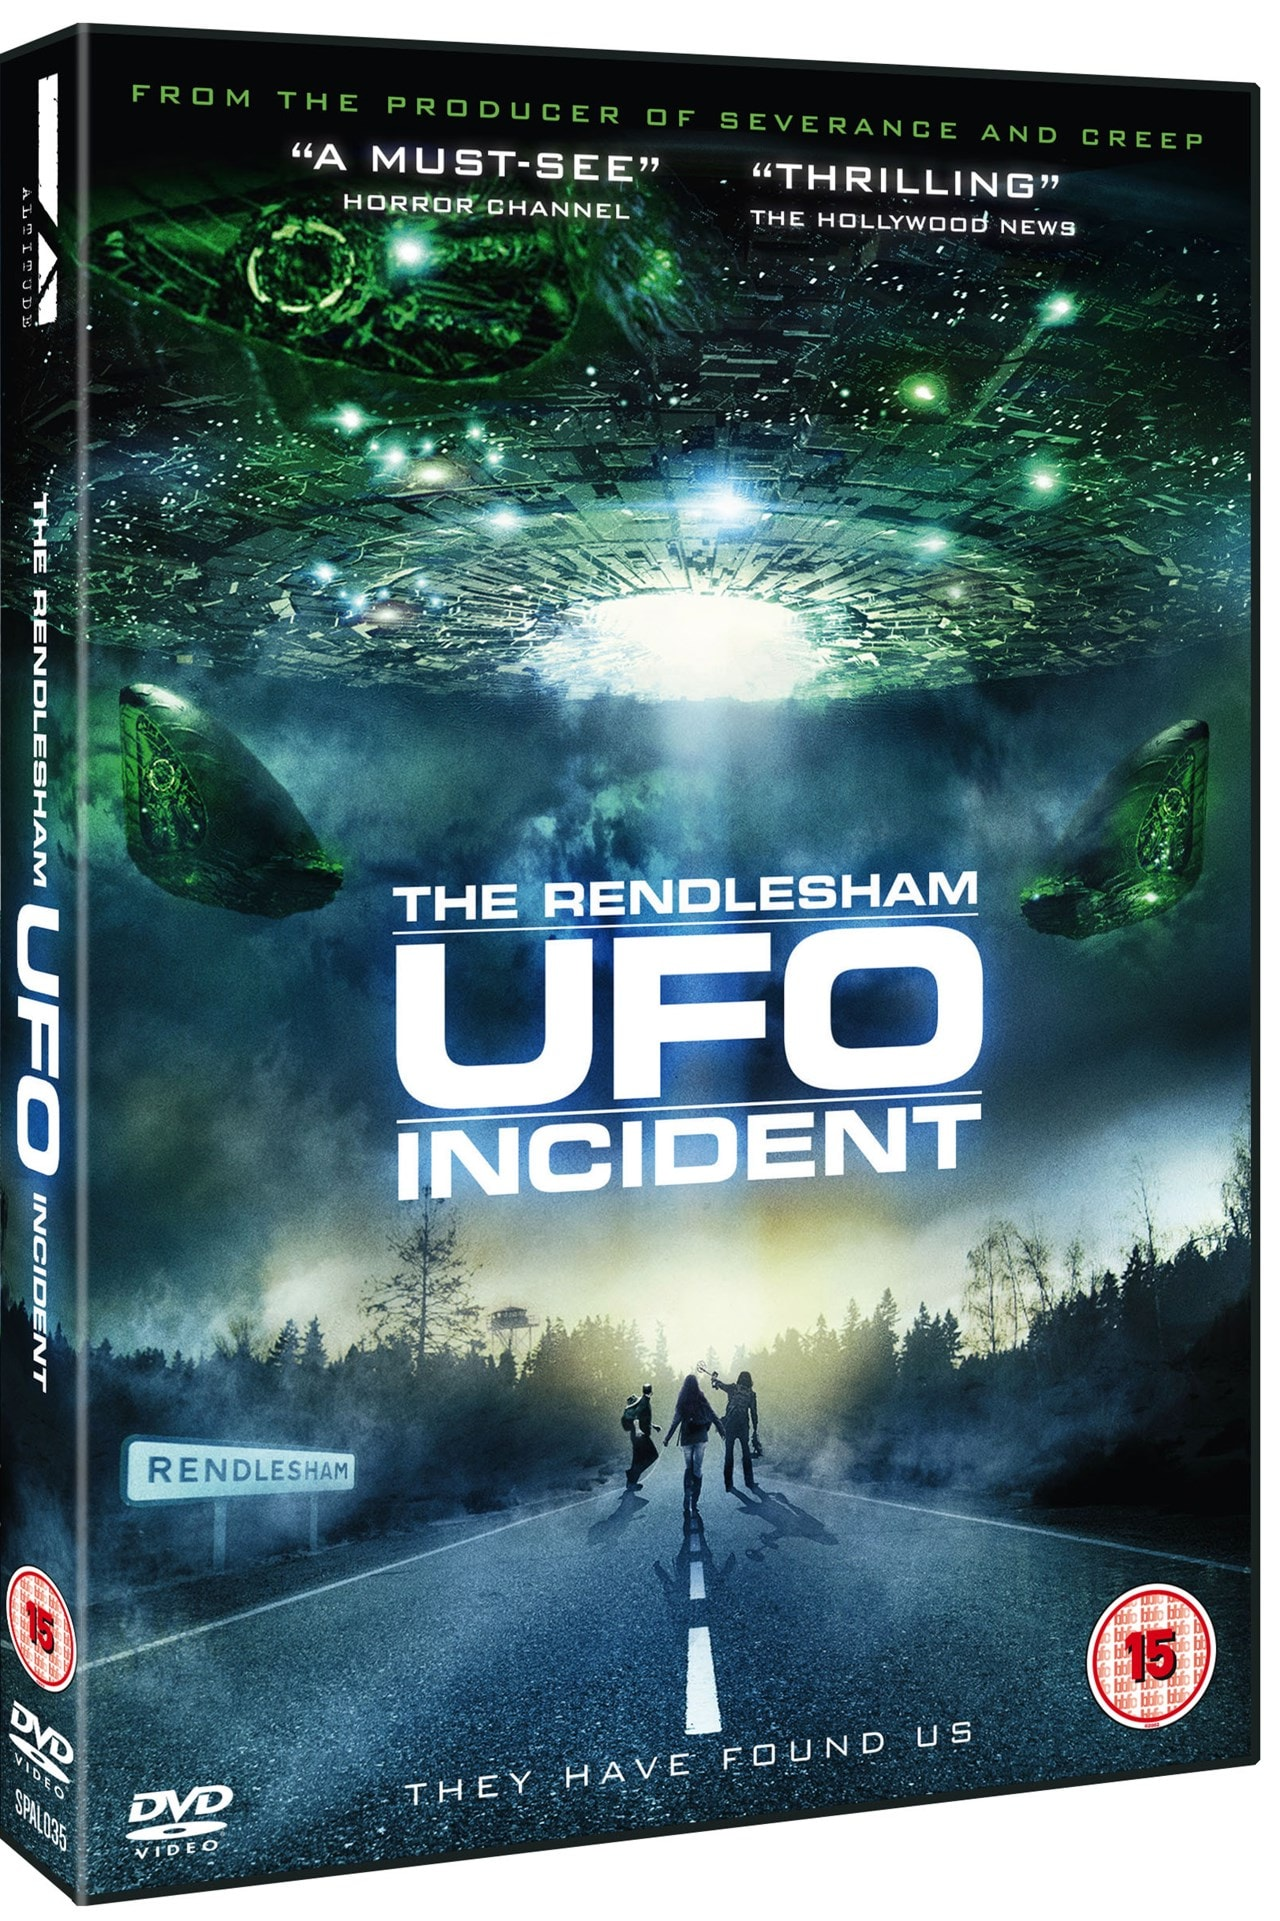 The Rendlesham UFO Incident - 2